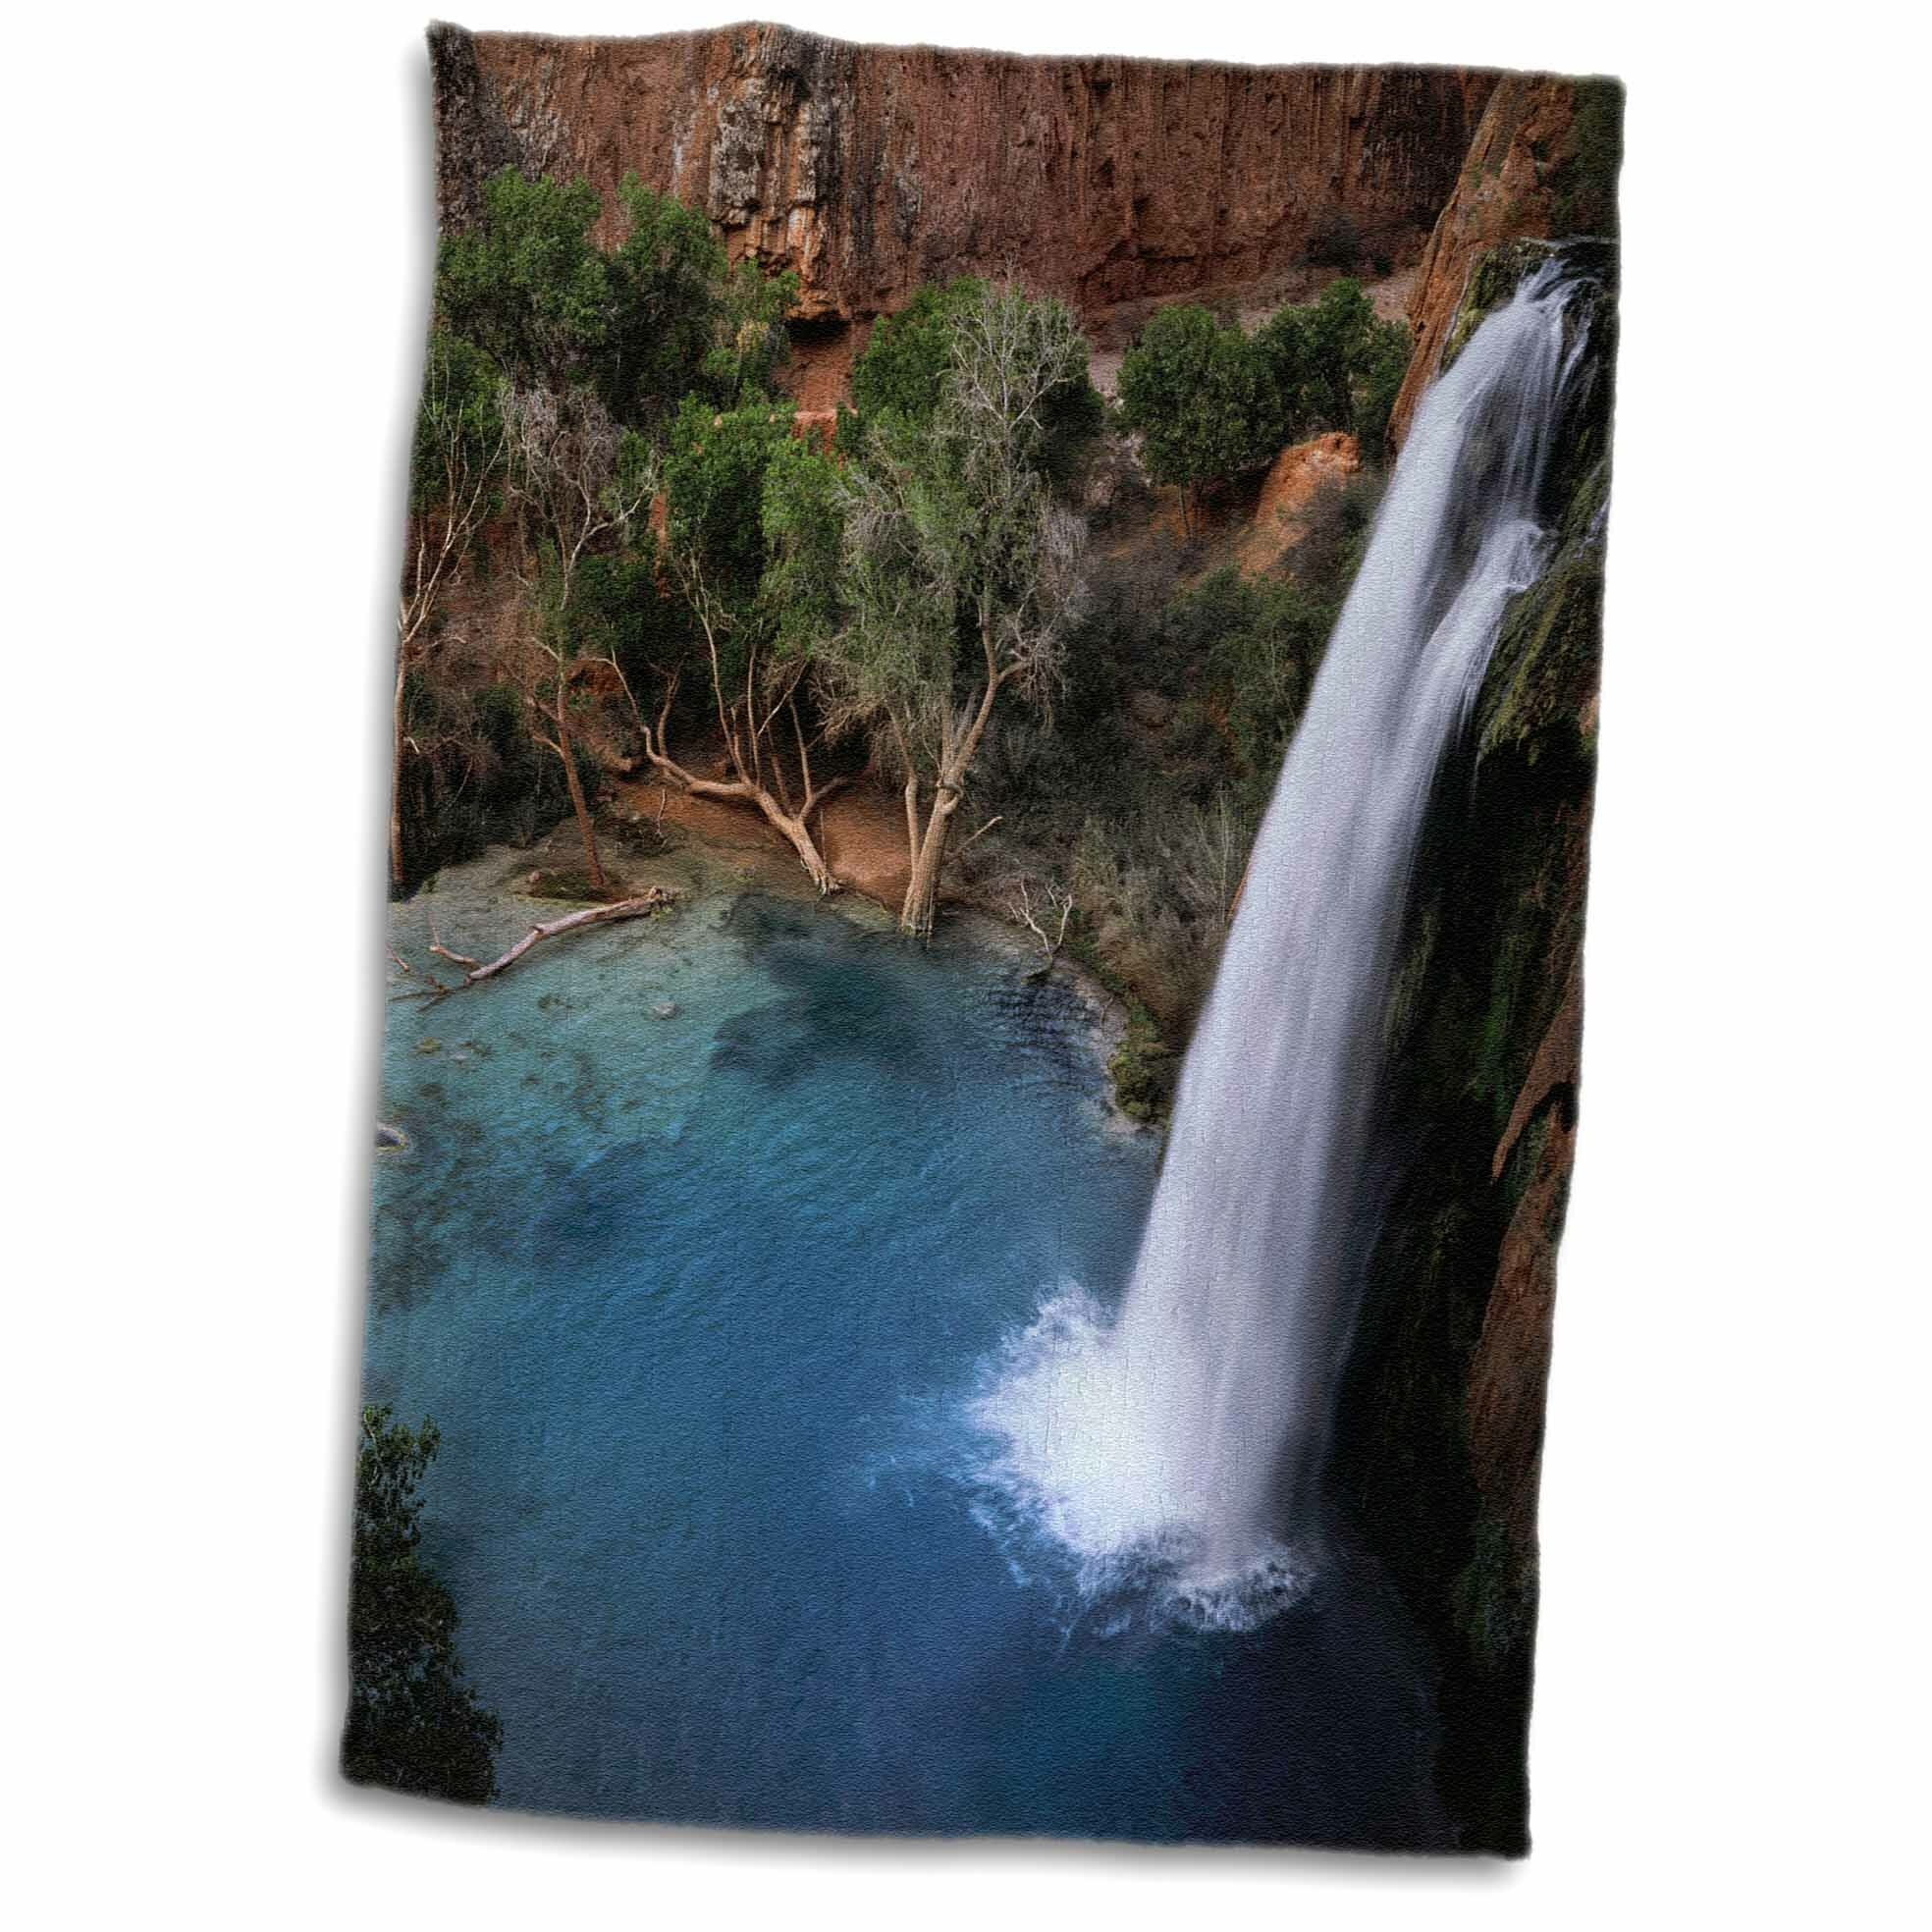 East Urban Home Doherty Arizona Grand Canyon Havasu Falls In Havasupai Indian Tribal Lands Tea Towel Wayfair